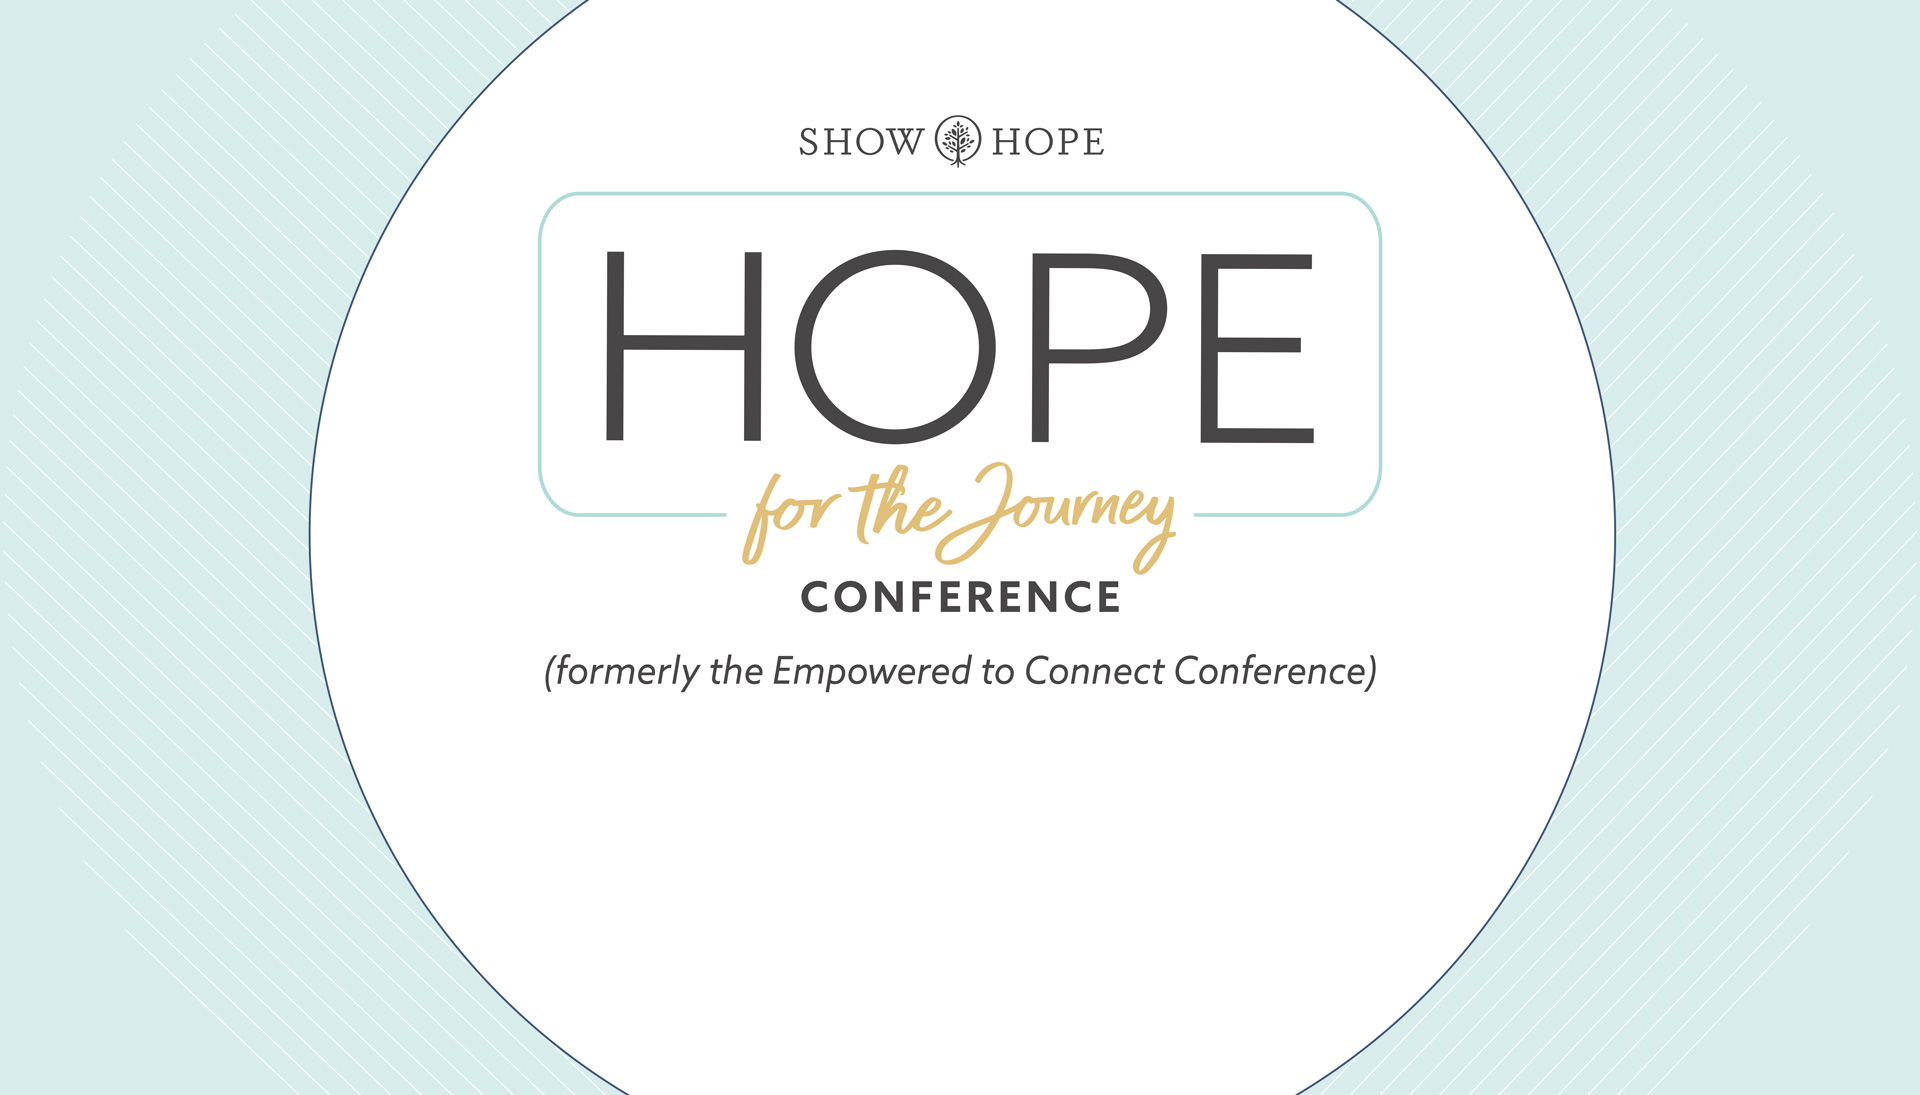 Image: Hope for the Journey Conference Webcast